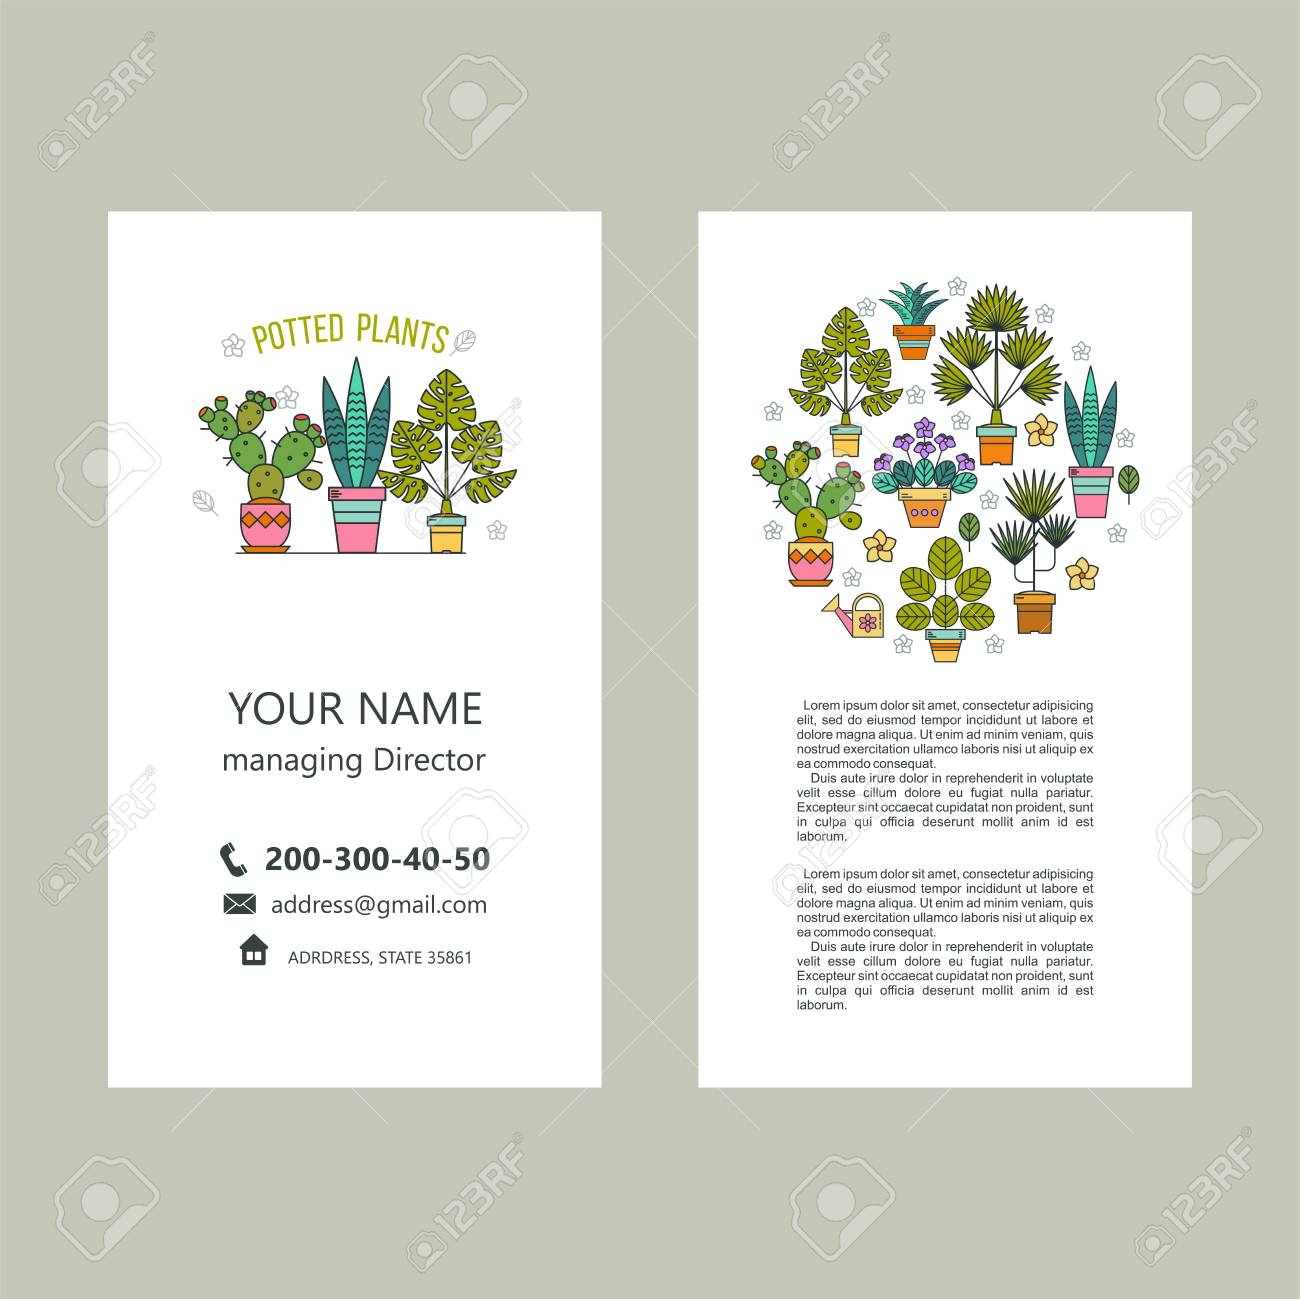 Potted Plants. Vector Illustration. Business Cards, Flyer. Isolated ...